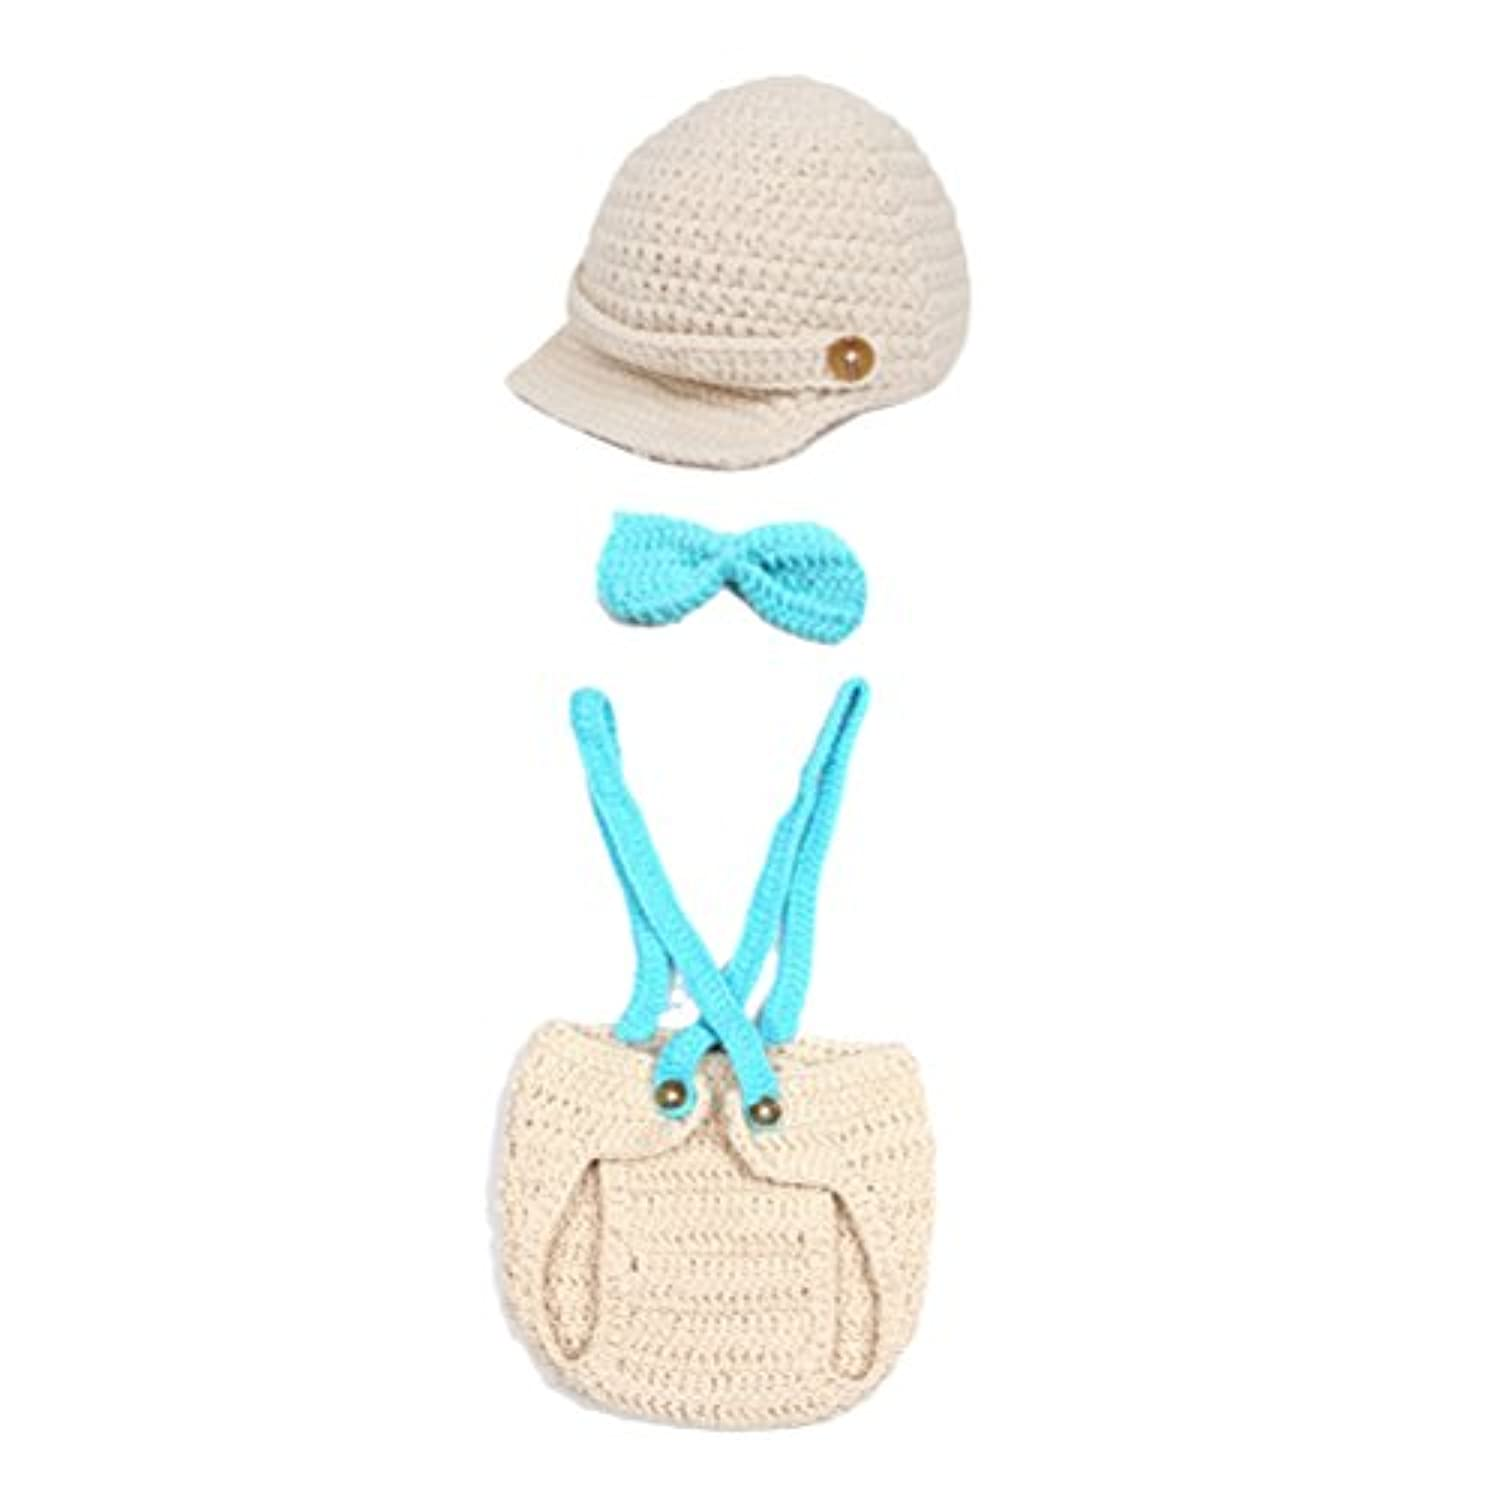 Zhhlaixing ベビー服 Newborn Boys Girls Handmade Crochet Costume Photography Prop Knitted Cap&Shorts Set With Bow tie